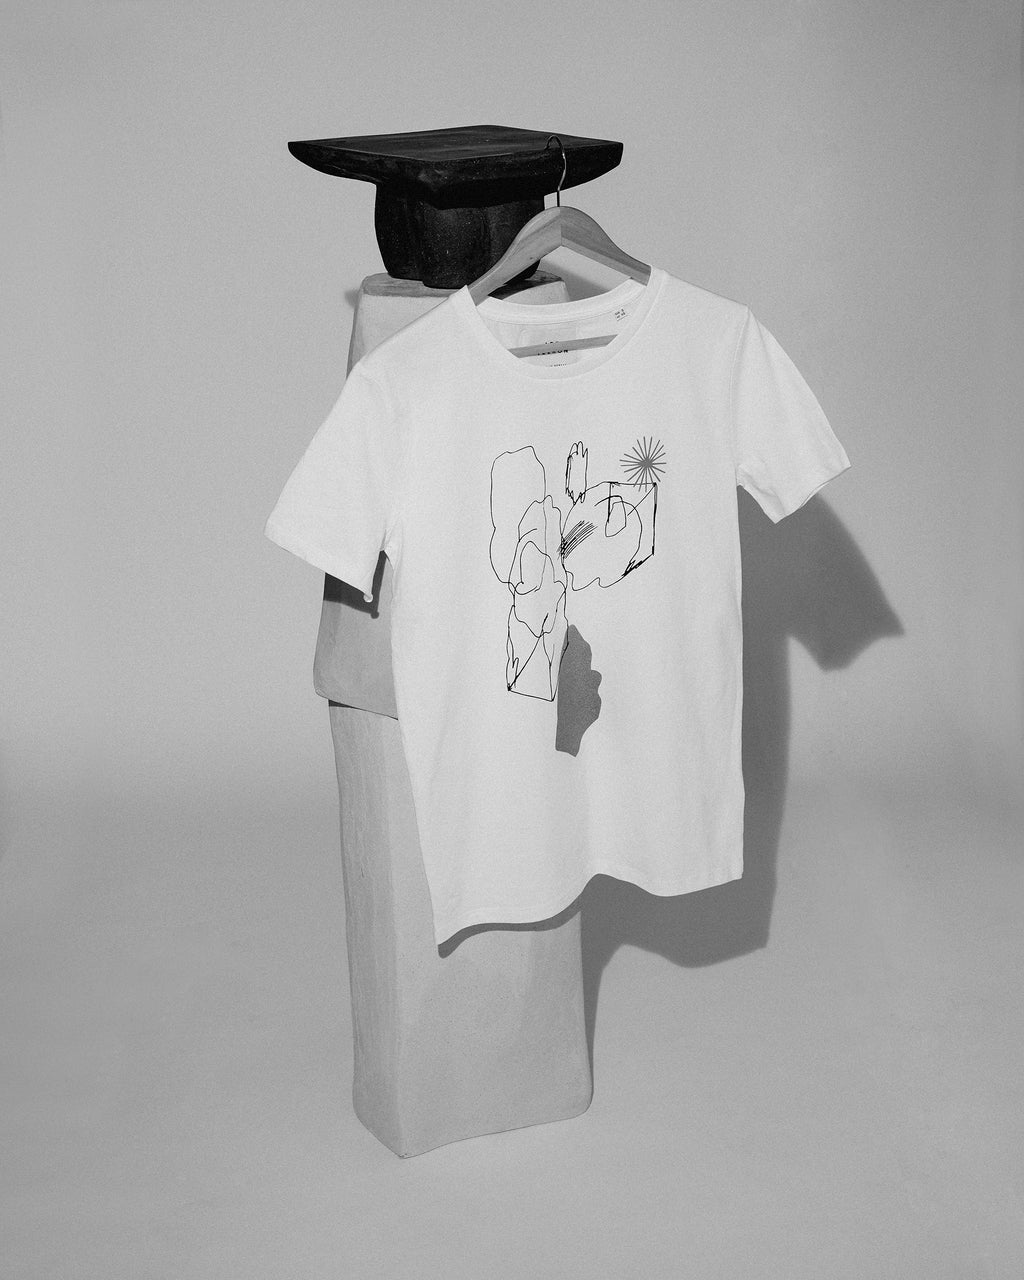 Artist Collab T-shirt